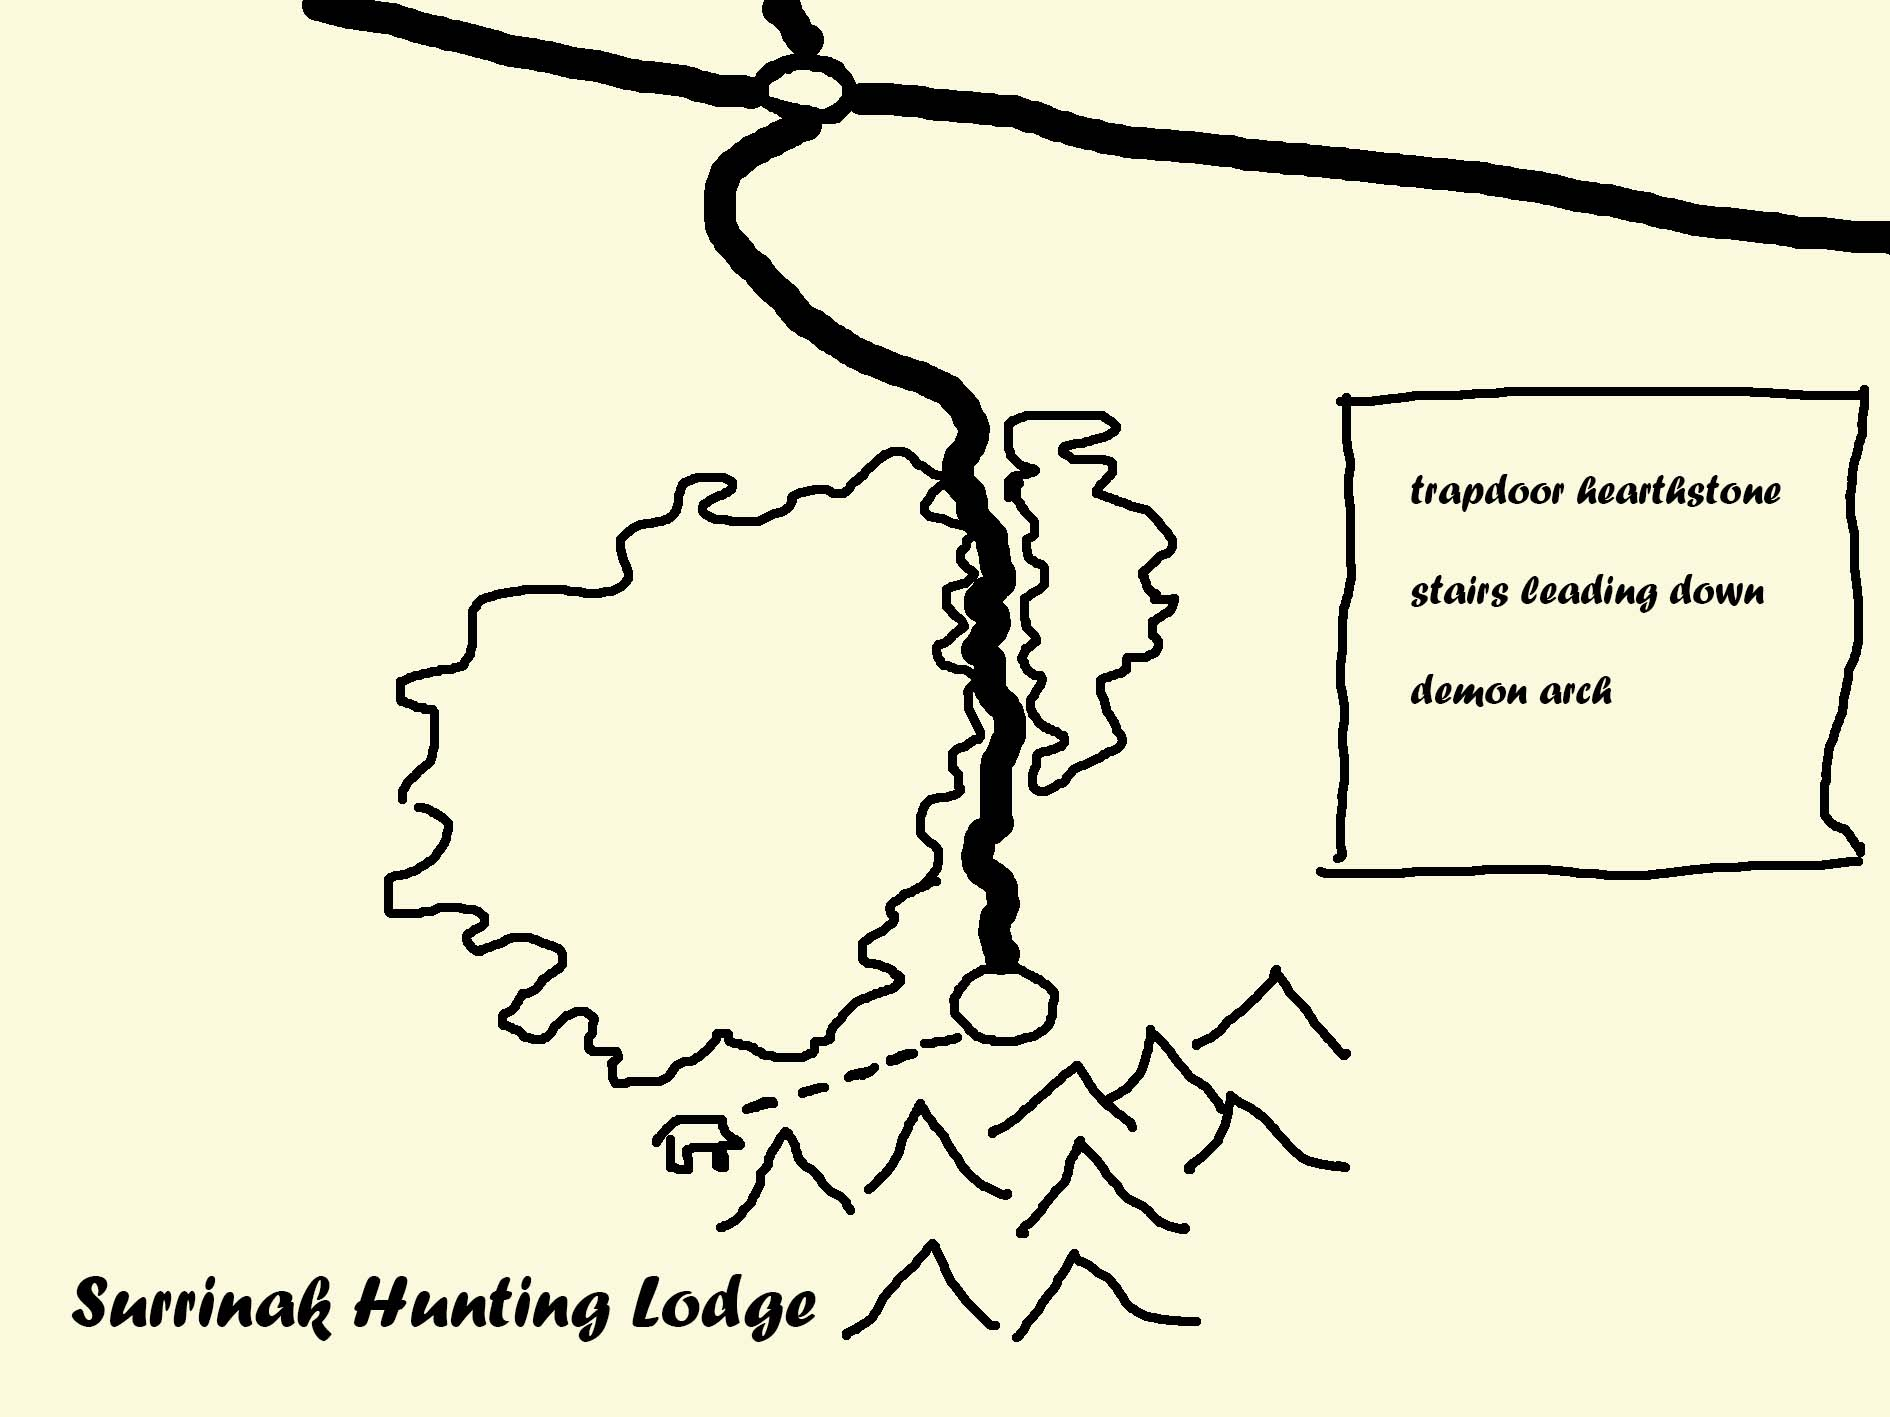 Surrinak_Hunting_Lodge.jpg